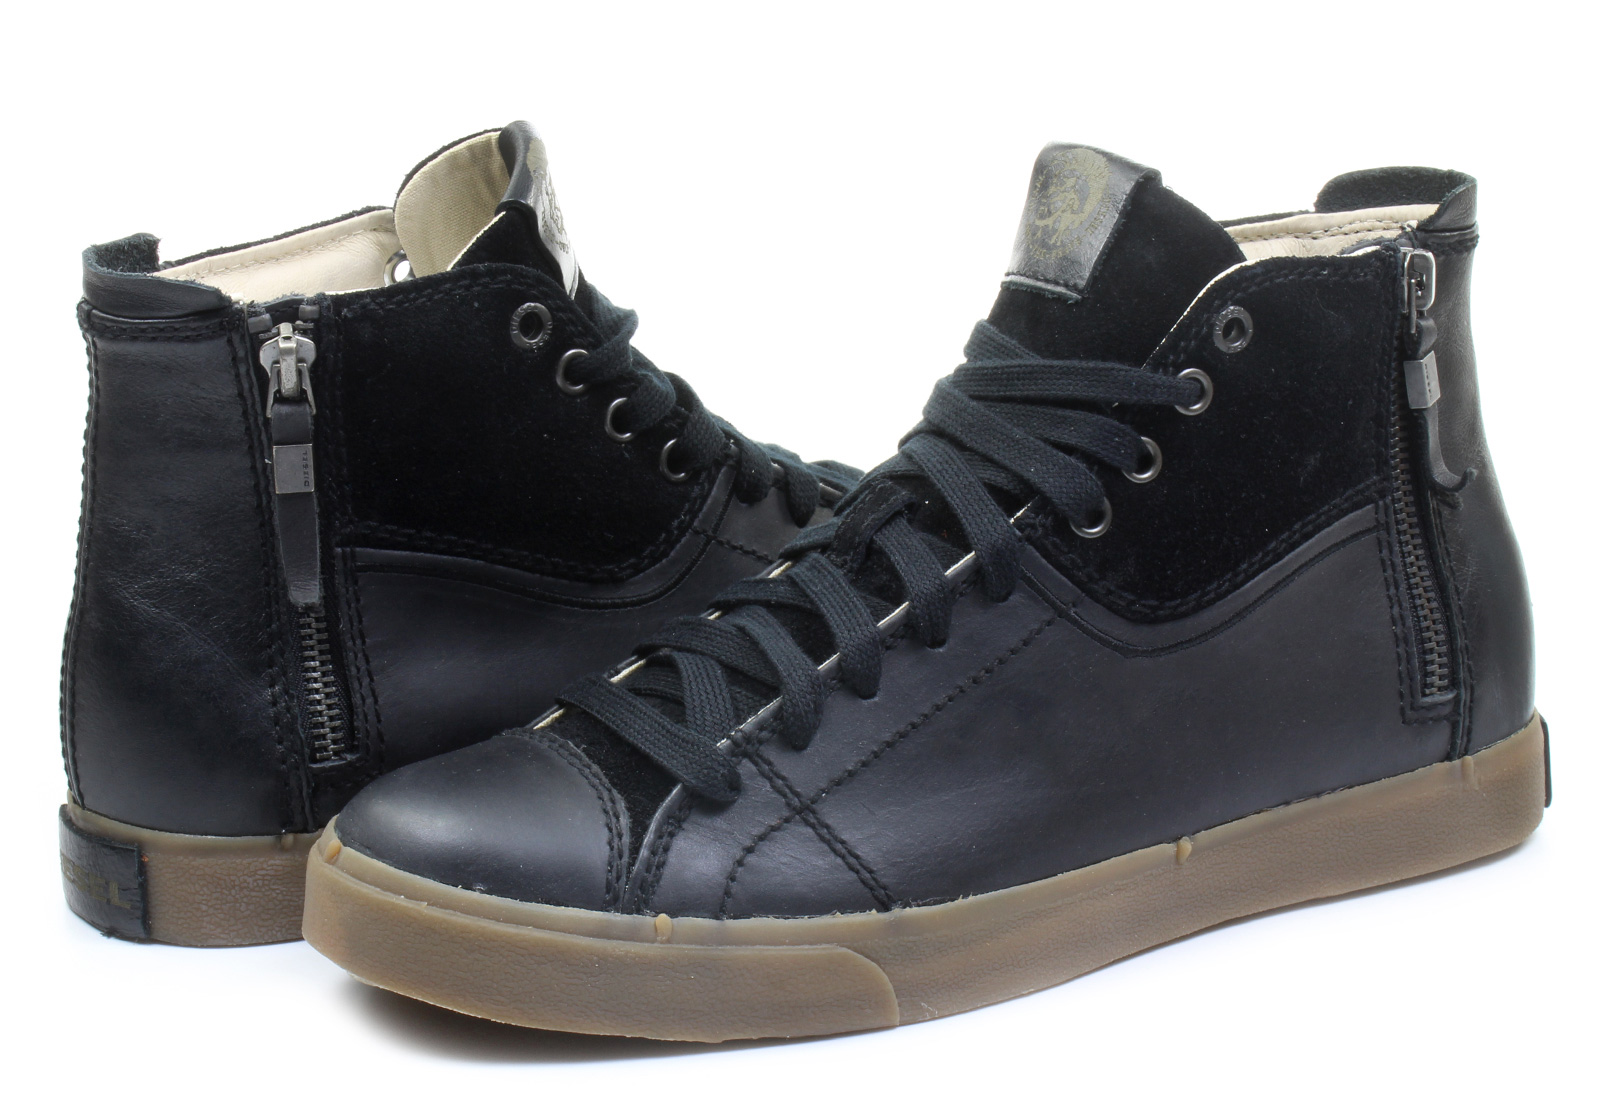 Diesel Shoes D Zippy 780 459 8013 Online Shop For